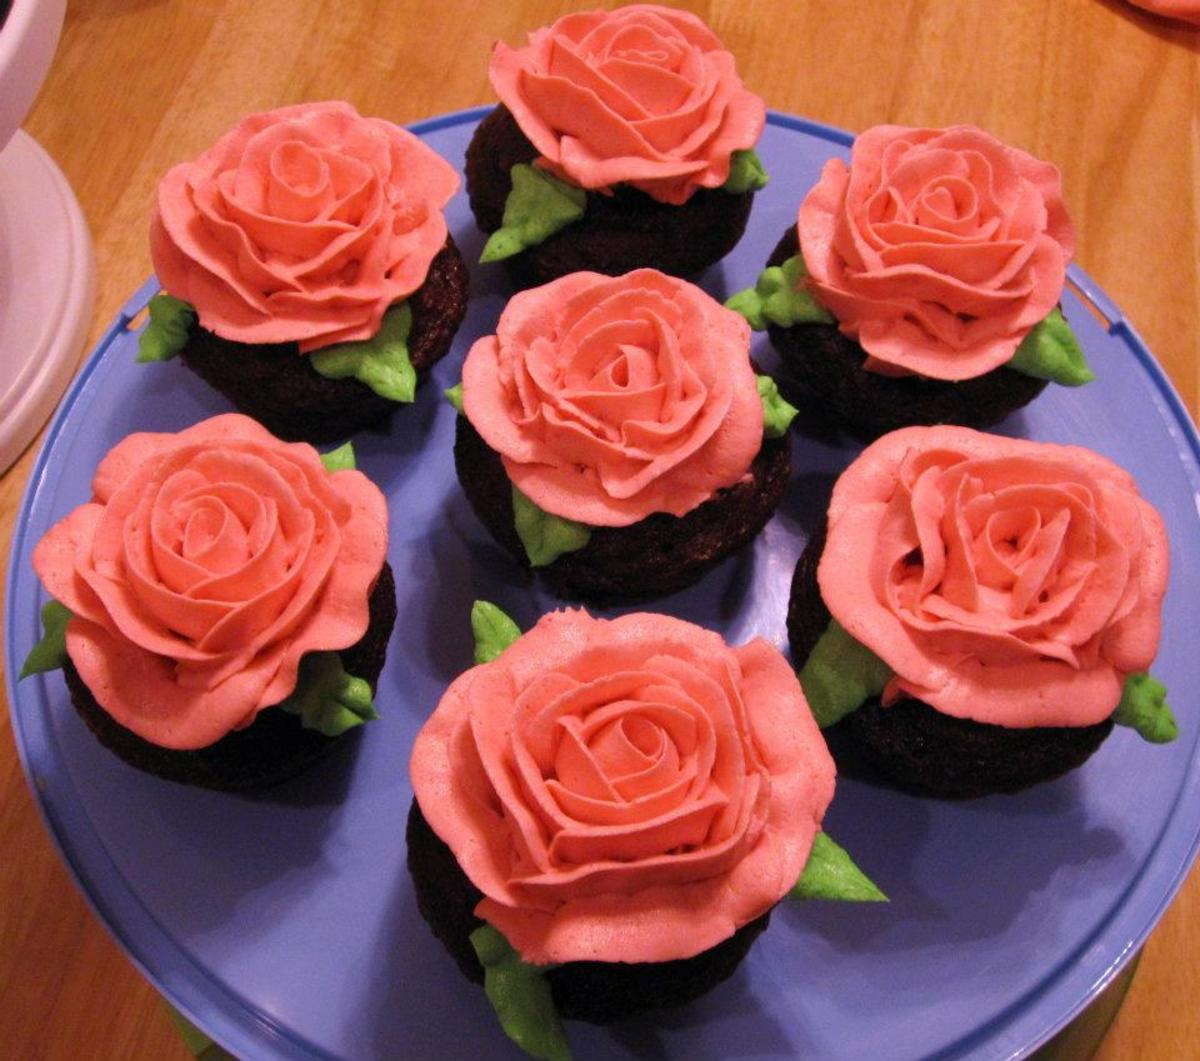 How to Make Buttercream Frosting for Cake Decorating